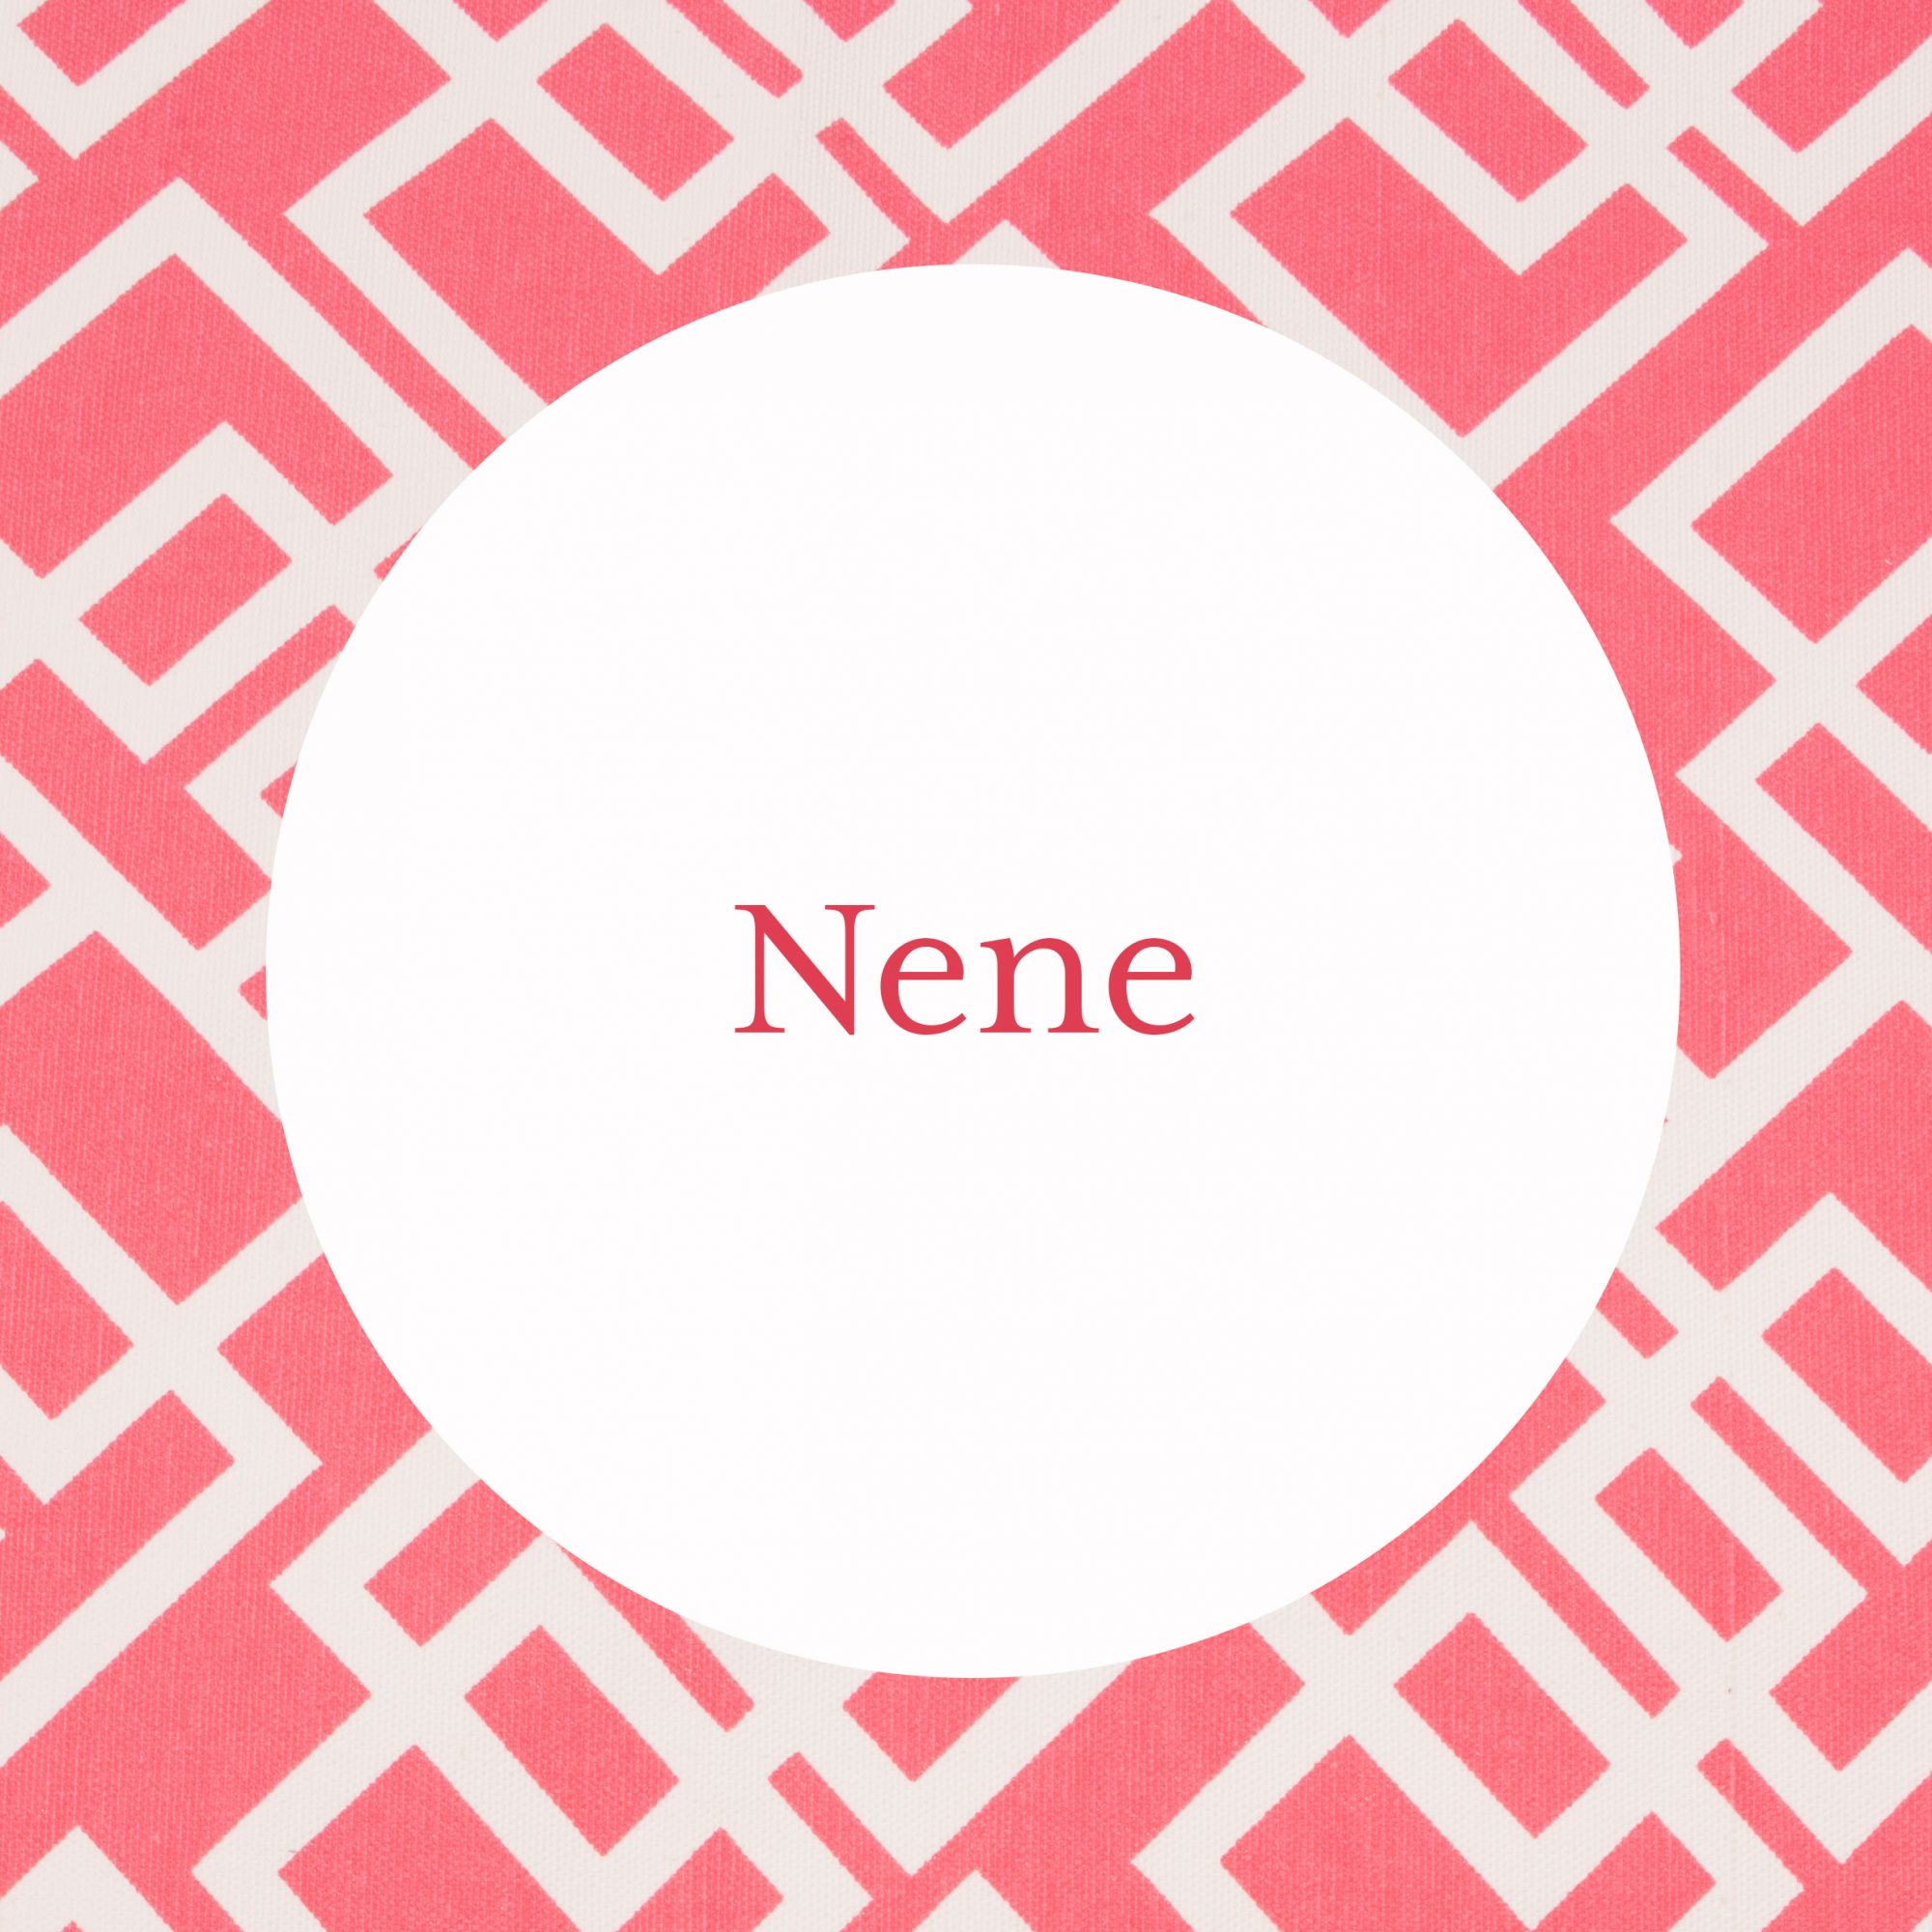 Nene Grandmother Name